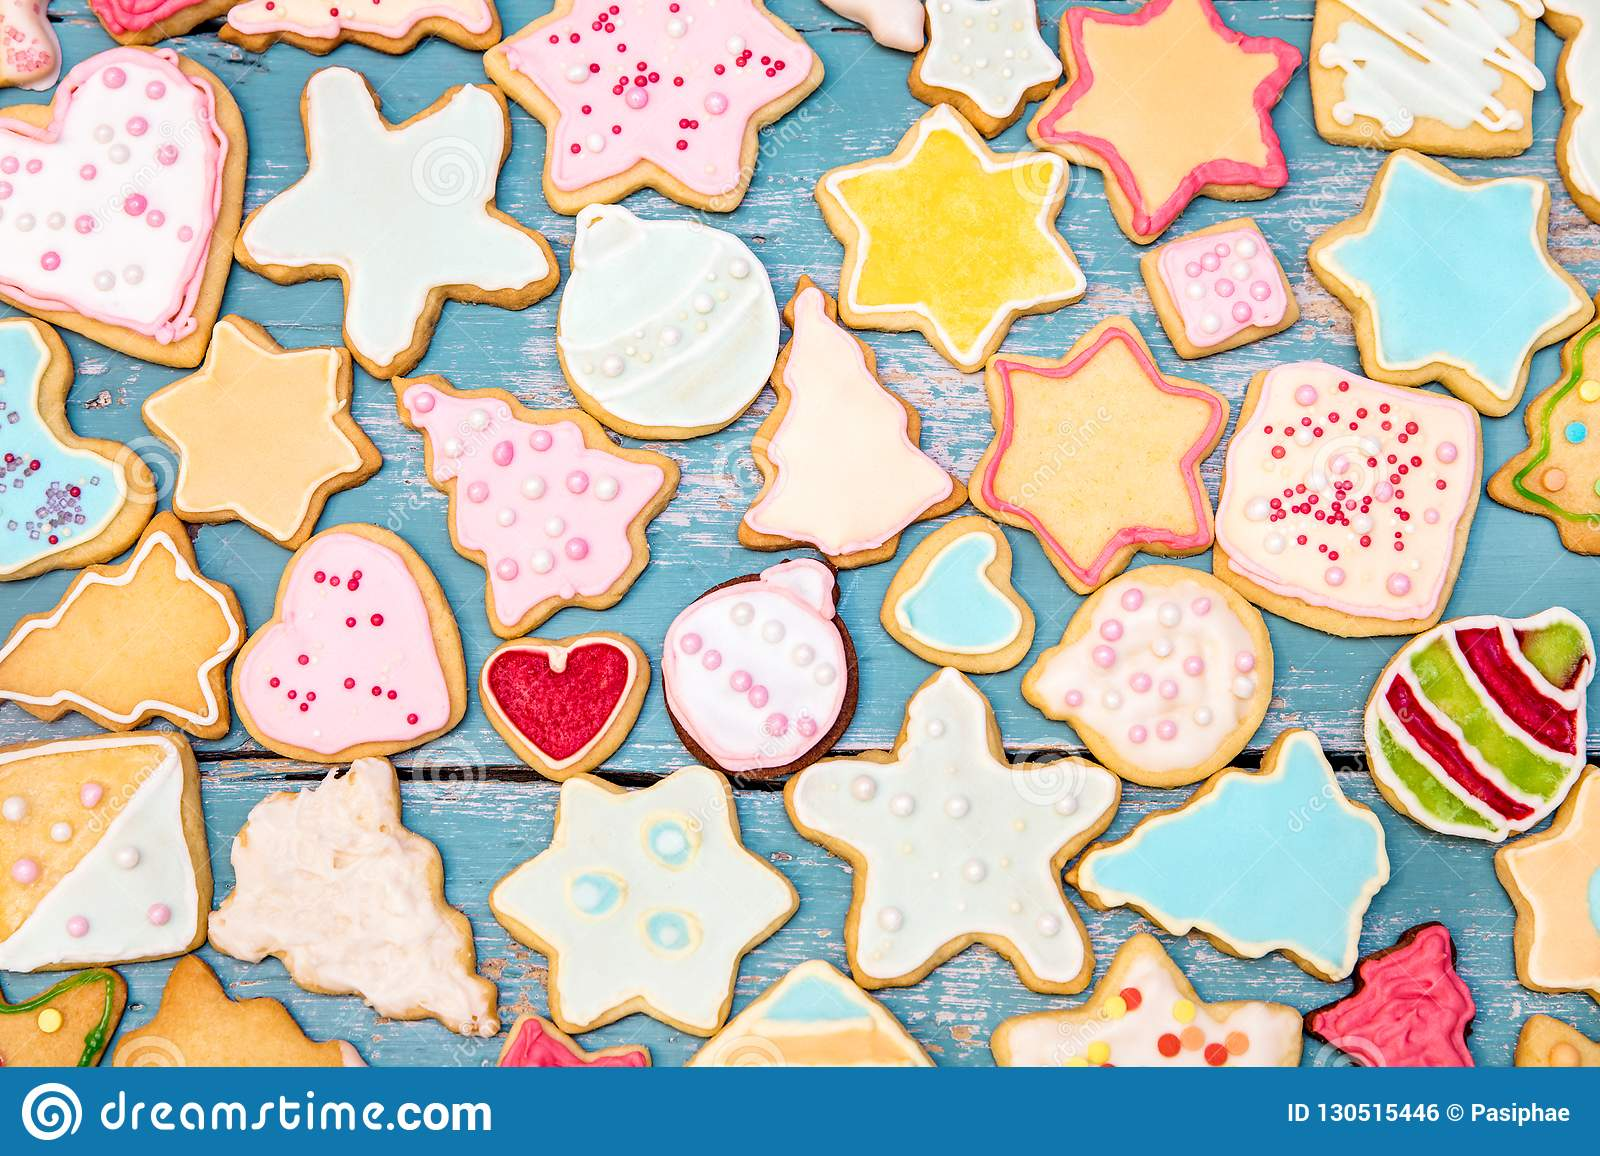 Christmas Cookie Frosting.Christmas Cookies With Frosting And Royal Icing Christmas